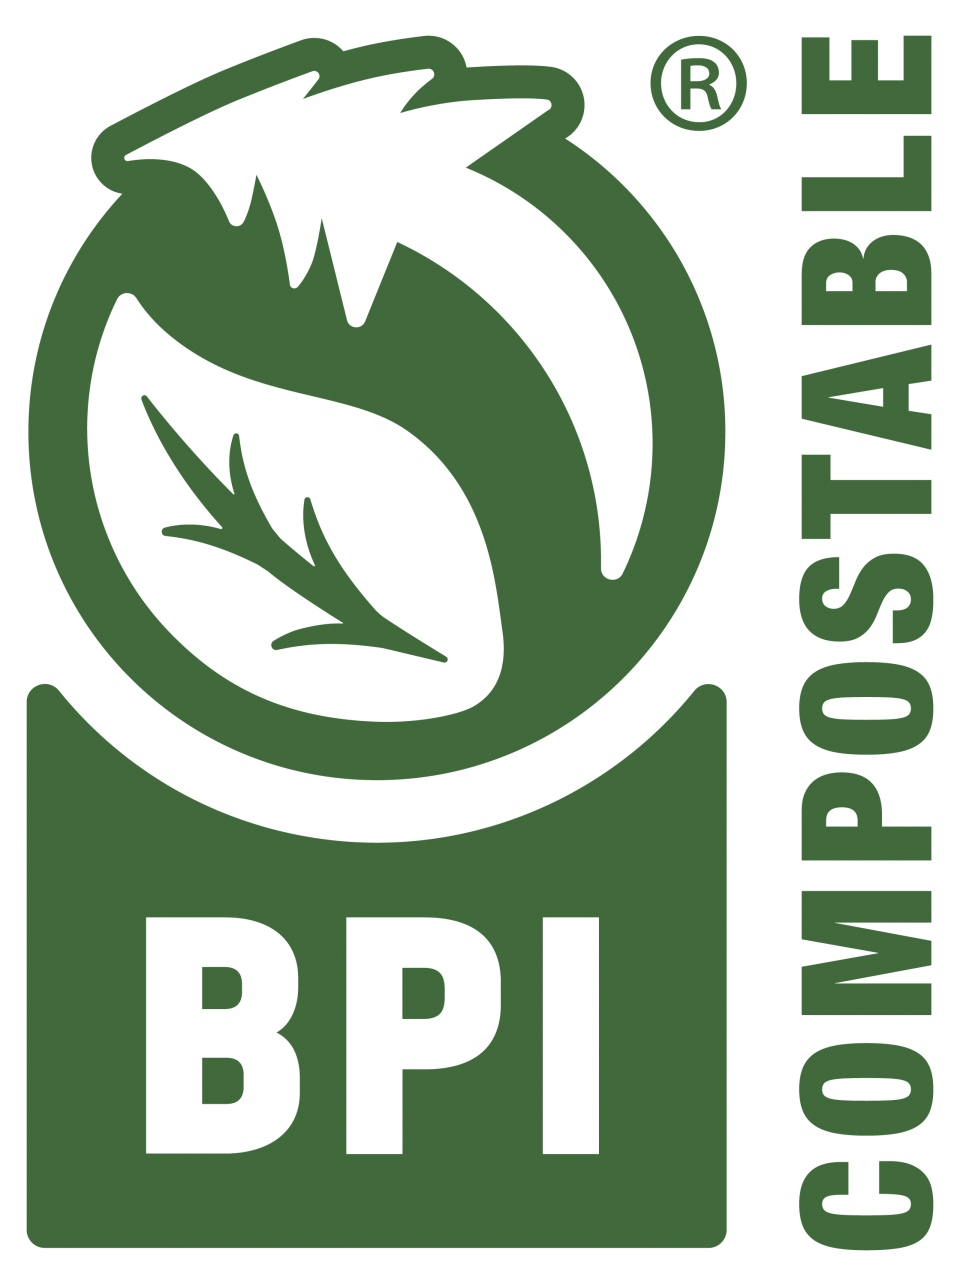 This photo provided by the Biodegradable Products Institute shows the official, recently updated BPI Certification Logo which tells consumers the product or package has been independently tested and verified and is approved for composting. (Biodegradable Products Institute via AP)